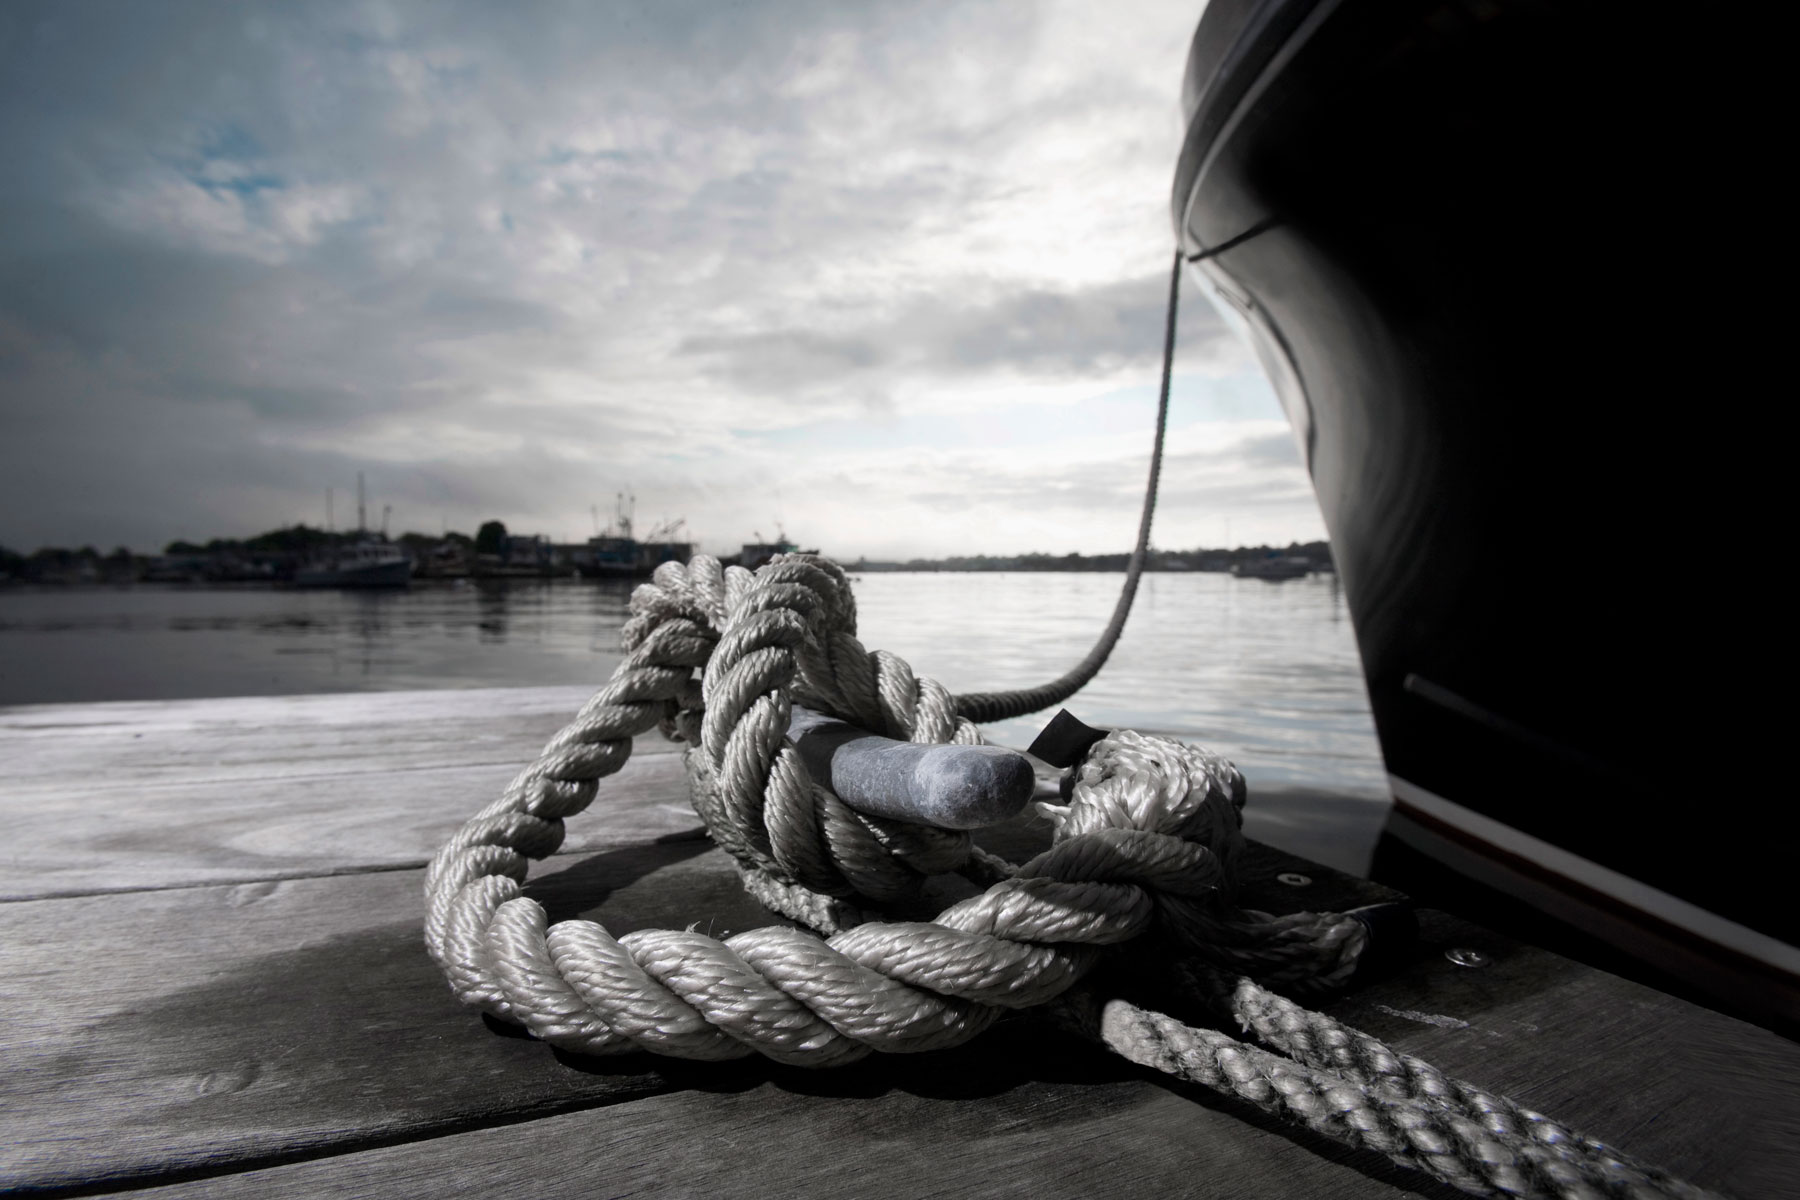 The choice of nautical imagery was carefully controlled to stay away from cliches whilst communicating strength and focus